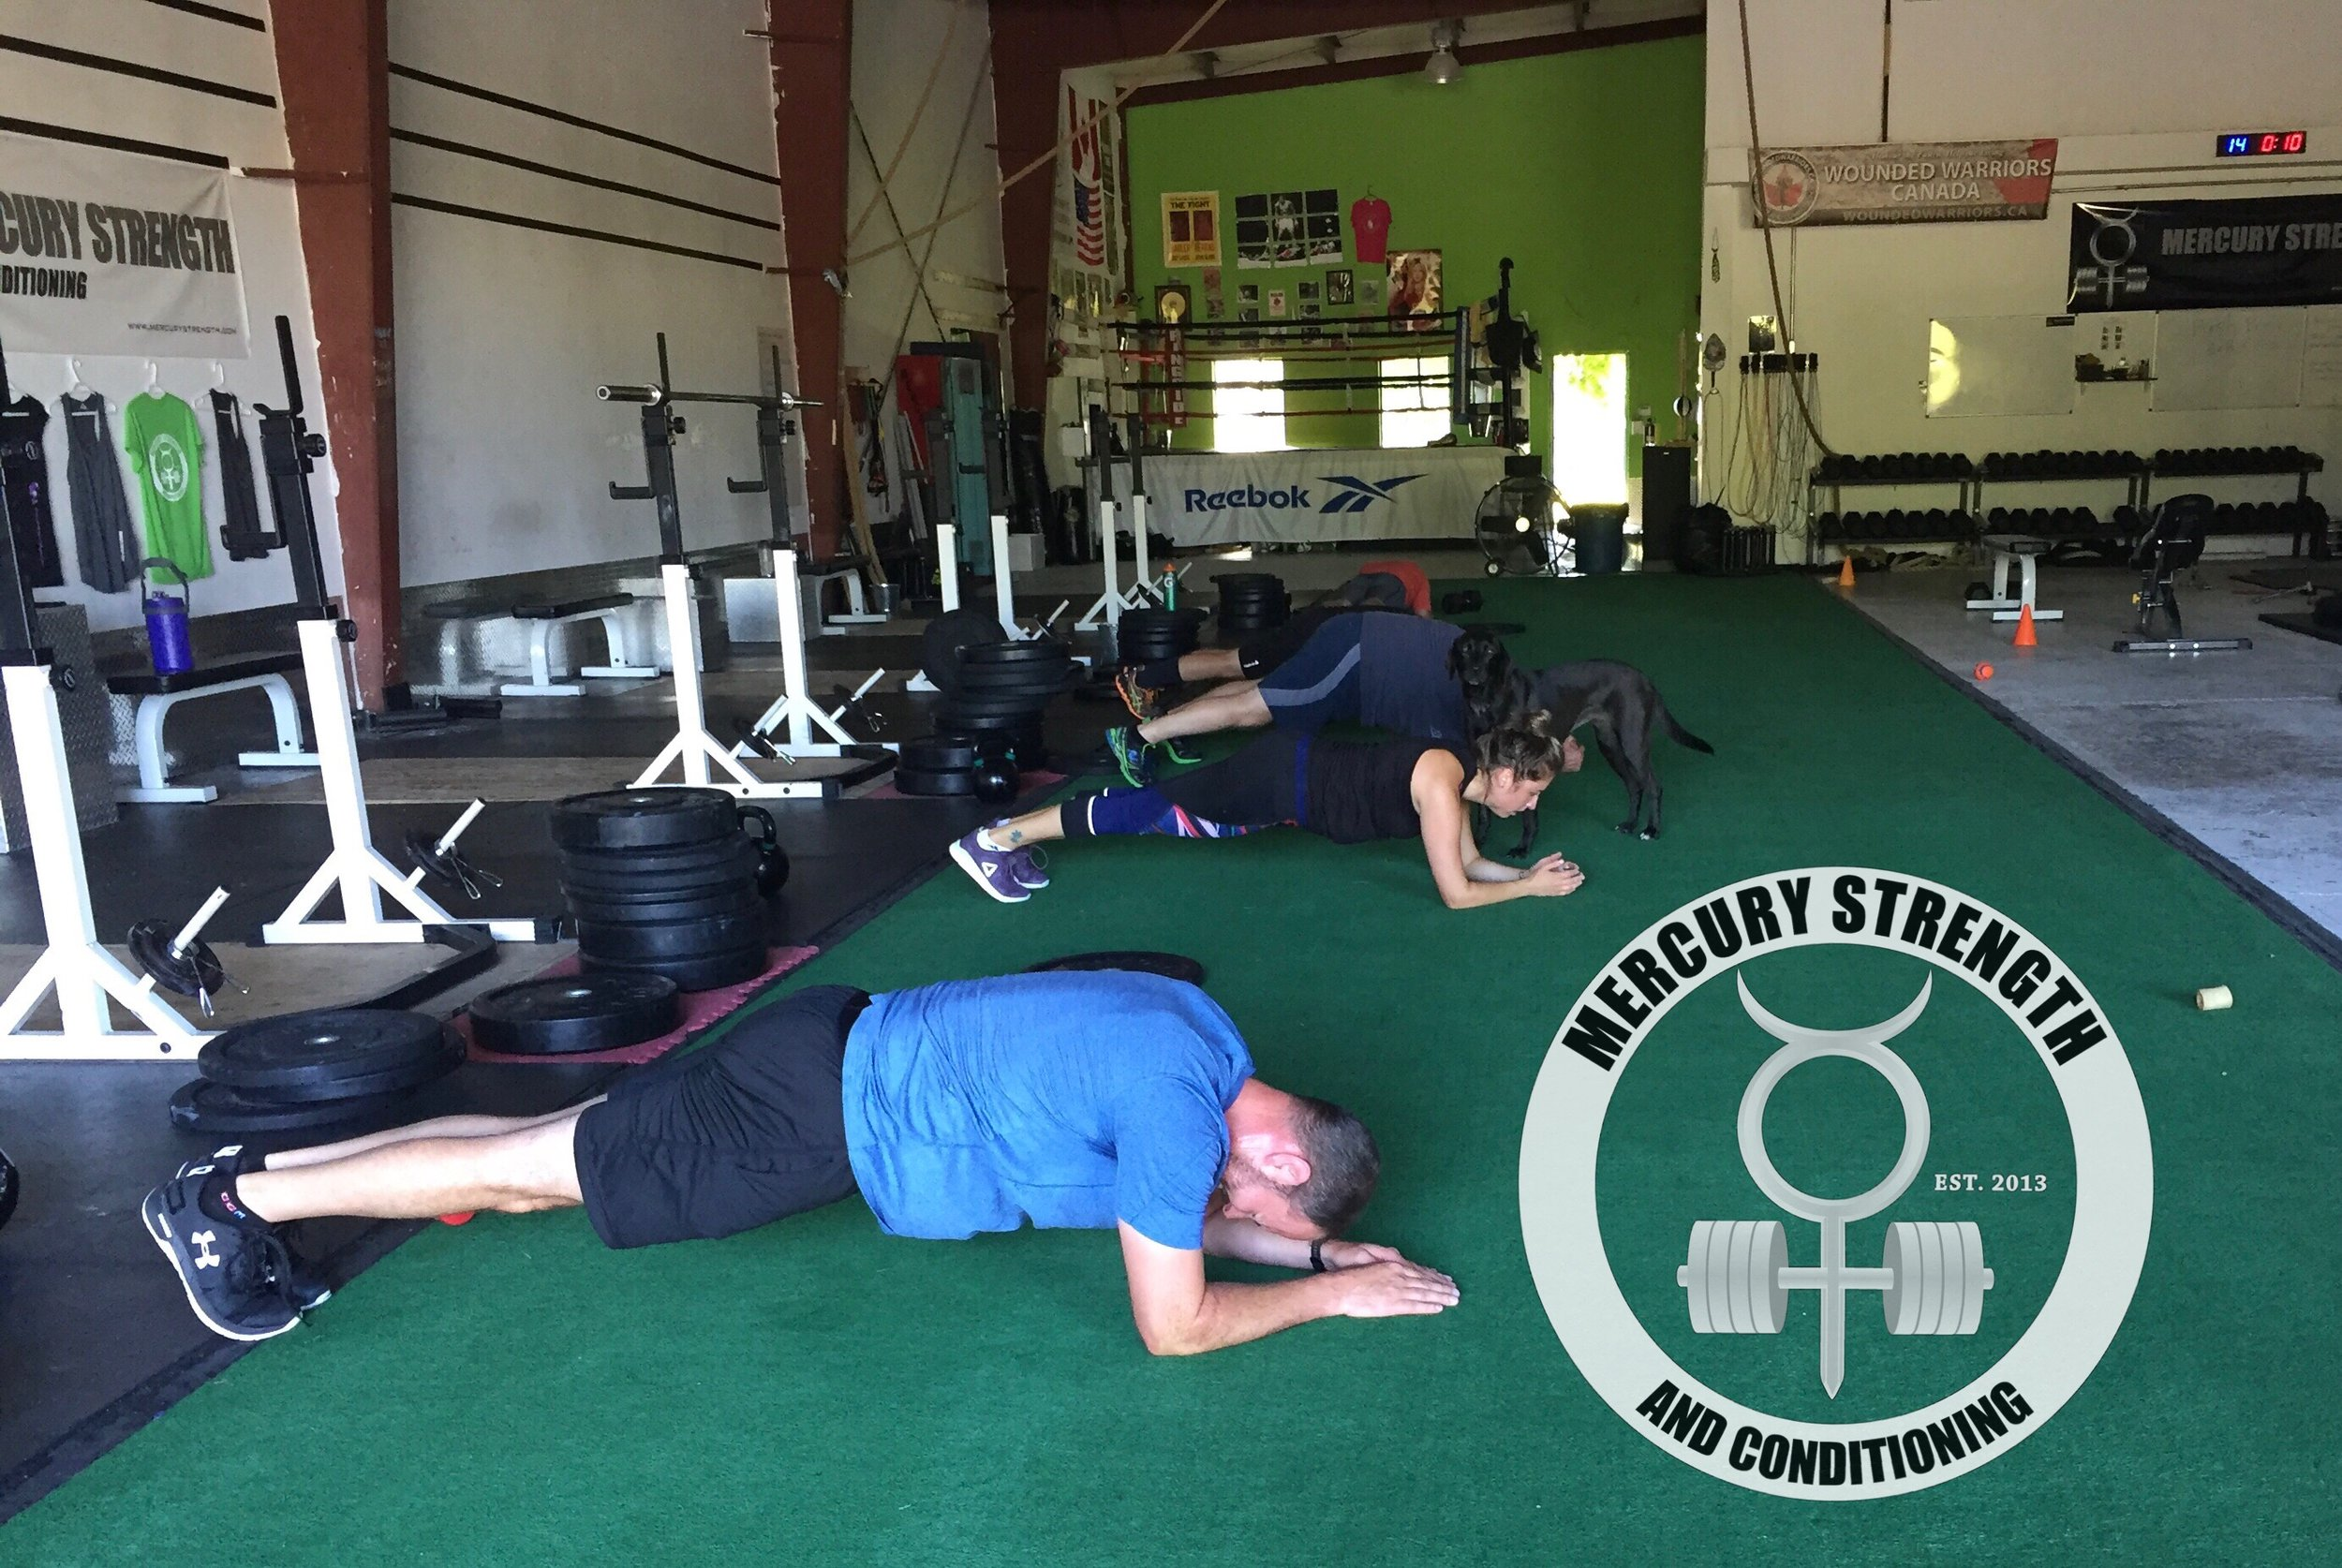 Gym-powerlifting-Olympic lifting-fitness-personal training-training-bootcamp-crossfit-kingston-kingston gym-kids-mercury-strength-conditioning-athlete-plank